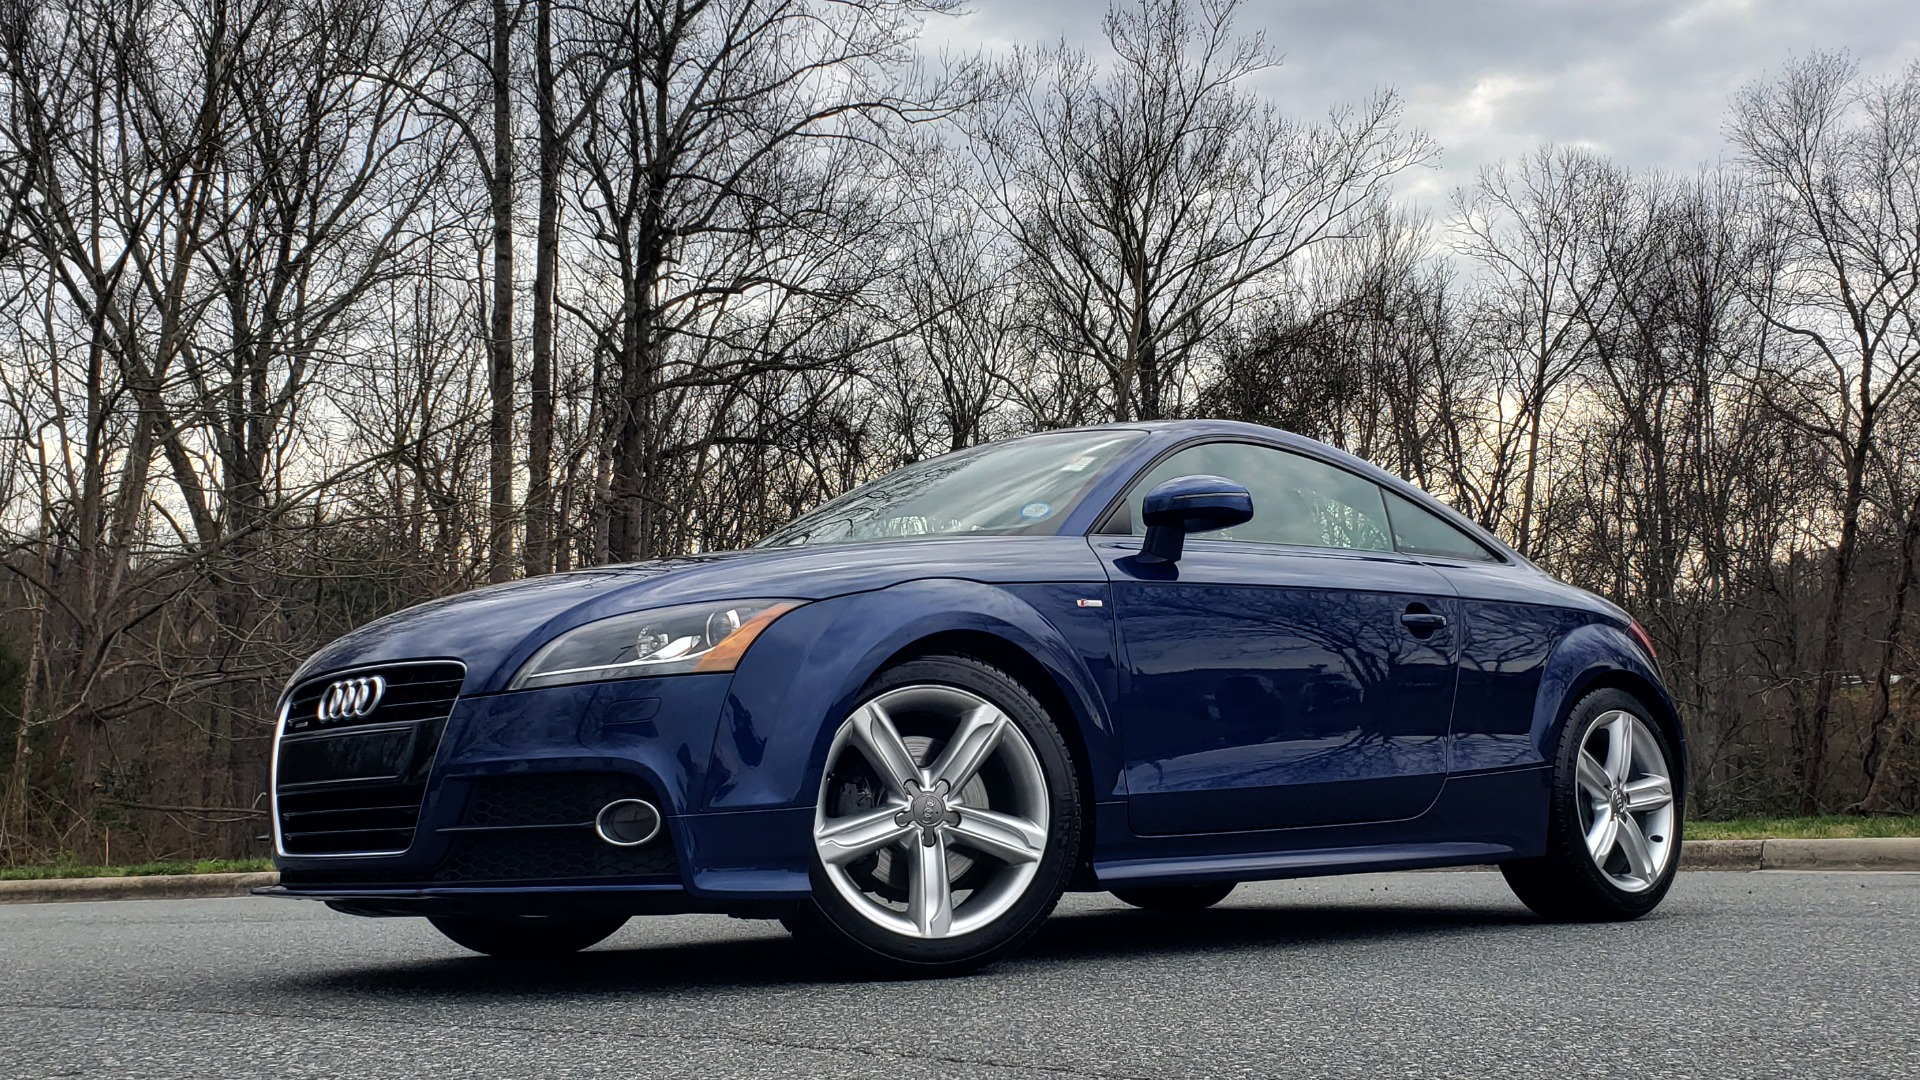 Used 2014 Audi TT 2.0T S-TRONIC / COUPE / AWD / LEATHER / HEATED SEATS for sale Sold at Formula Imports in Charlotte NC 28227 2